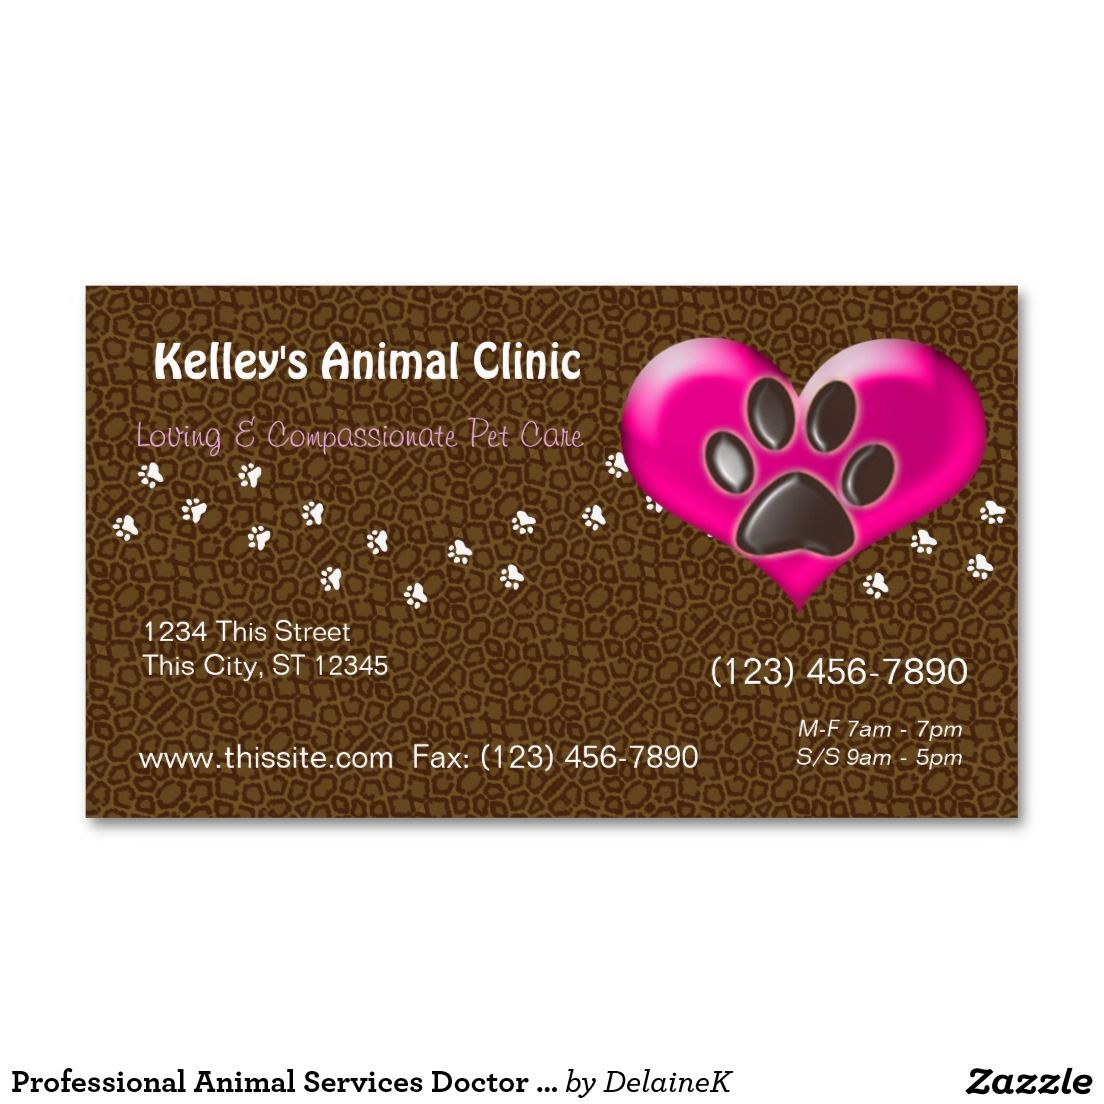 Professional animal services doctor u pick color double sided professional animal services doctor u pick color double sided standard business cards pack of reheart Image collections